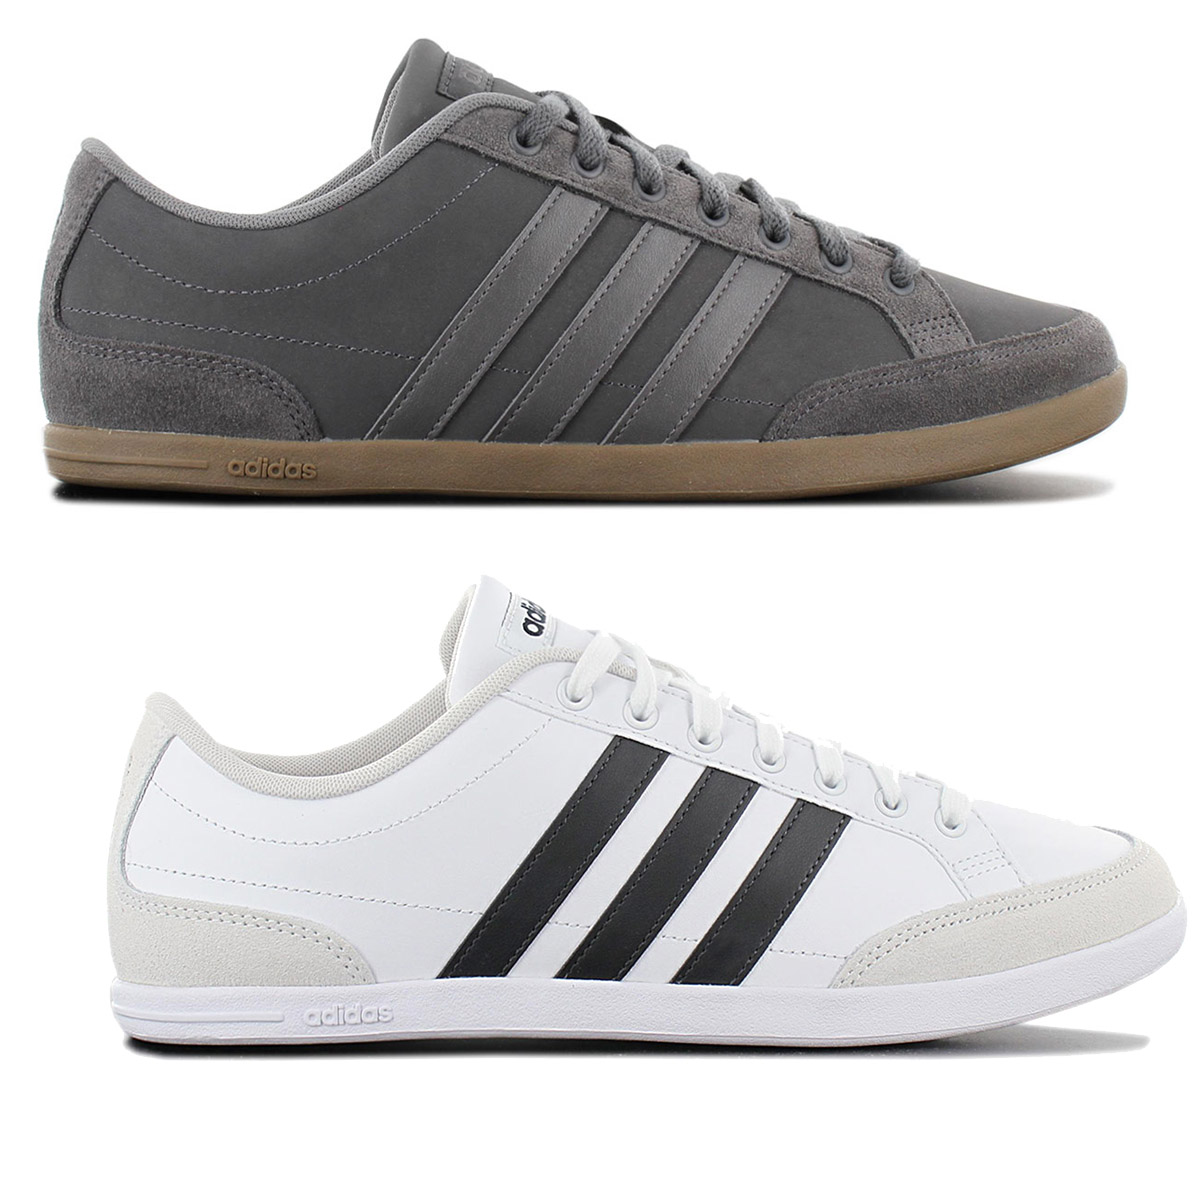 Details about Adidas Caflaire Sneaker Men's Leather Casual Shoes Trainers Sports Shoes New